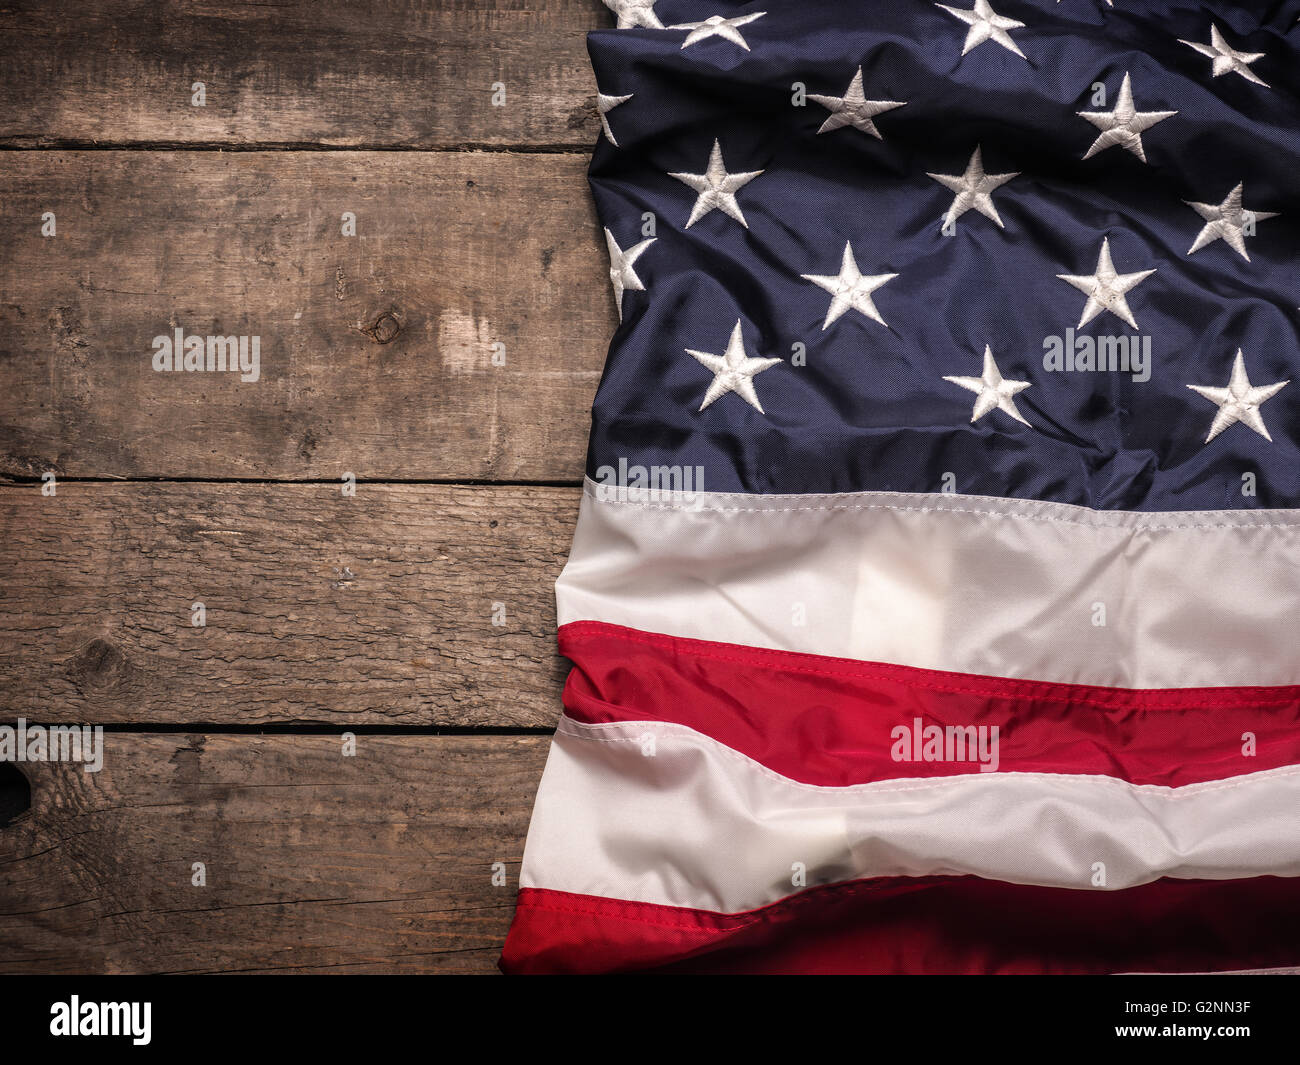 The Flag Of United States America On Rustic Barn Wood